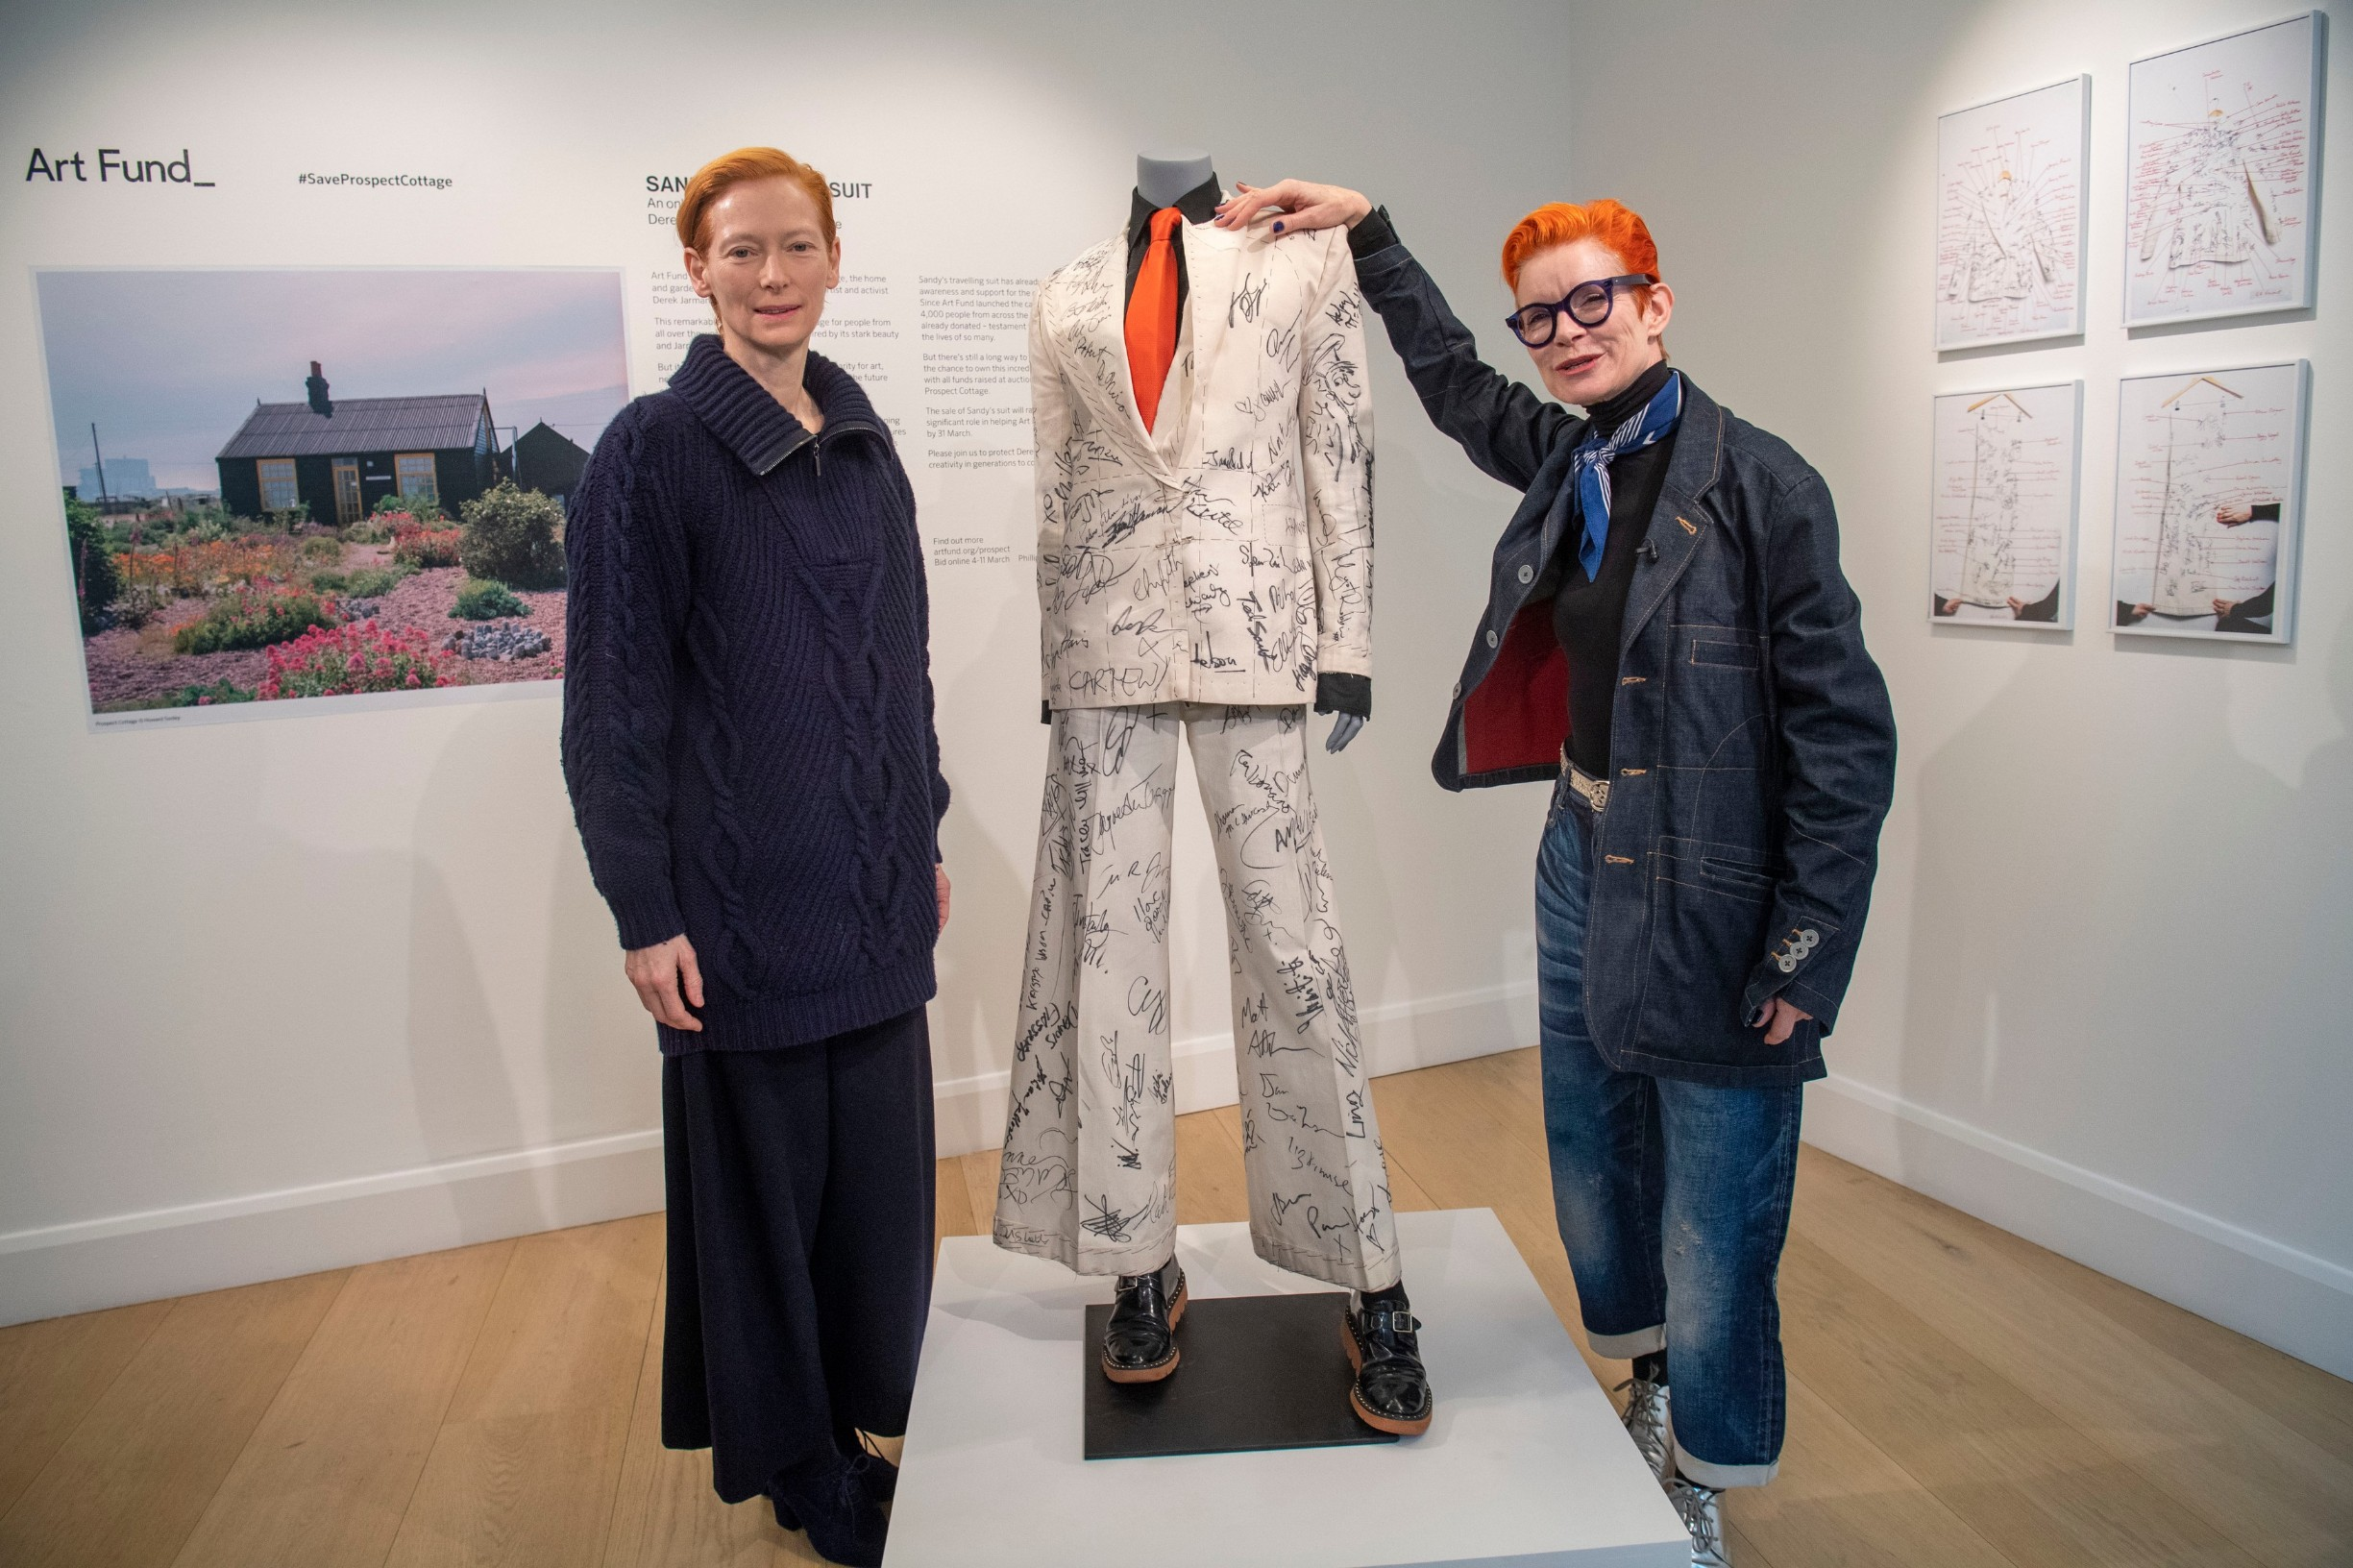 March 4, 2020, London, London, United Kingdom: Image licensed to i-Images Picture Agency. 04/03/2020. London, United Kingdom. Actress Tilda Swinton with costume designer Sandy Powell and her Oscars suit signed by stars before it is offered at auction.  Proceeds from the auction will go towards Art Fund's public appeal to save and protect Prospect Cottage in Dungeness, Kent, United Kingdom., Image: 503289741, License: Rights-managed, Restrictions: * China, France, Italy, Spain, Taiwan and UK Rights OUT *, Model Release: no, Credit line: I-Images / Zuma Press / Profimedia